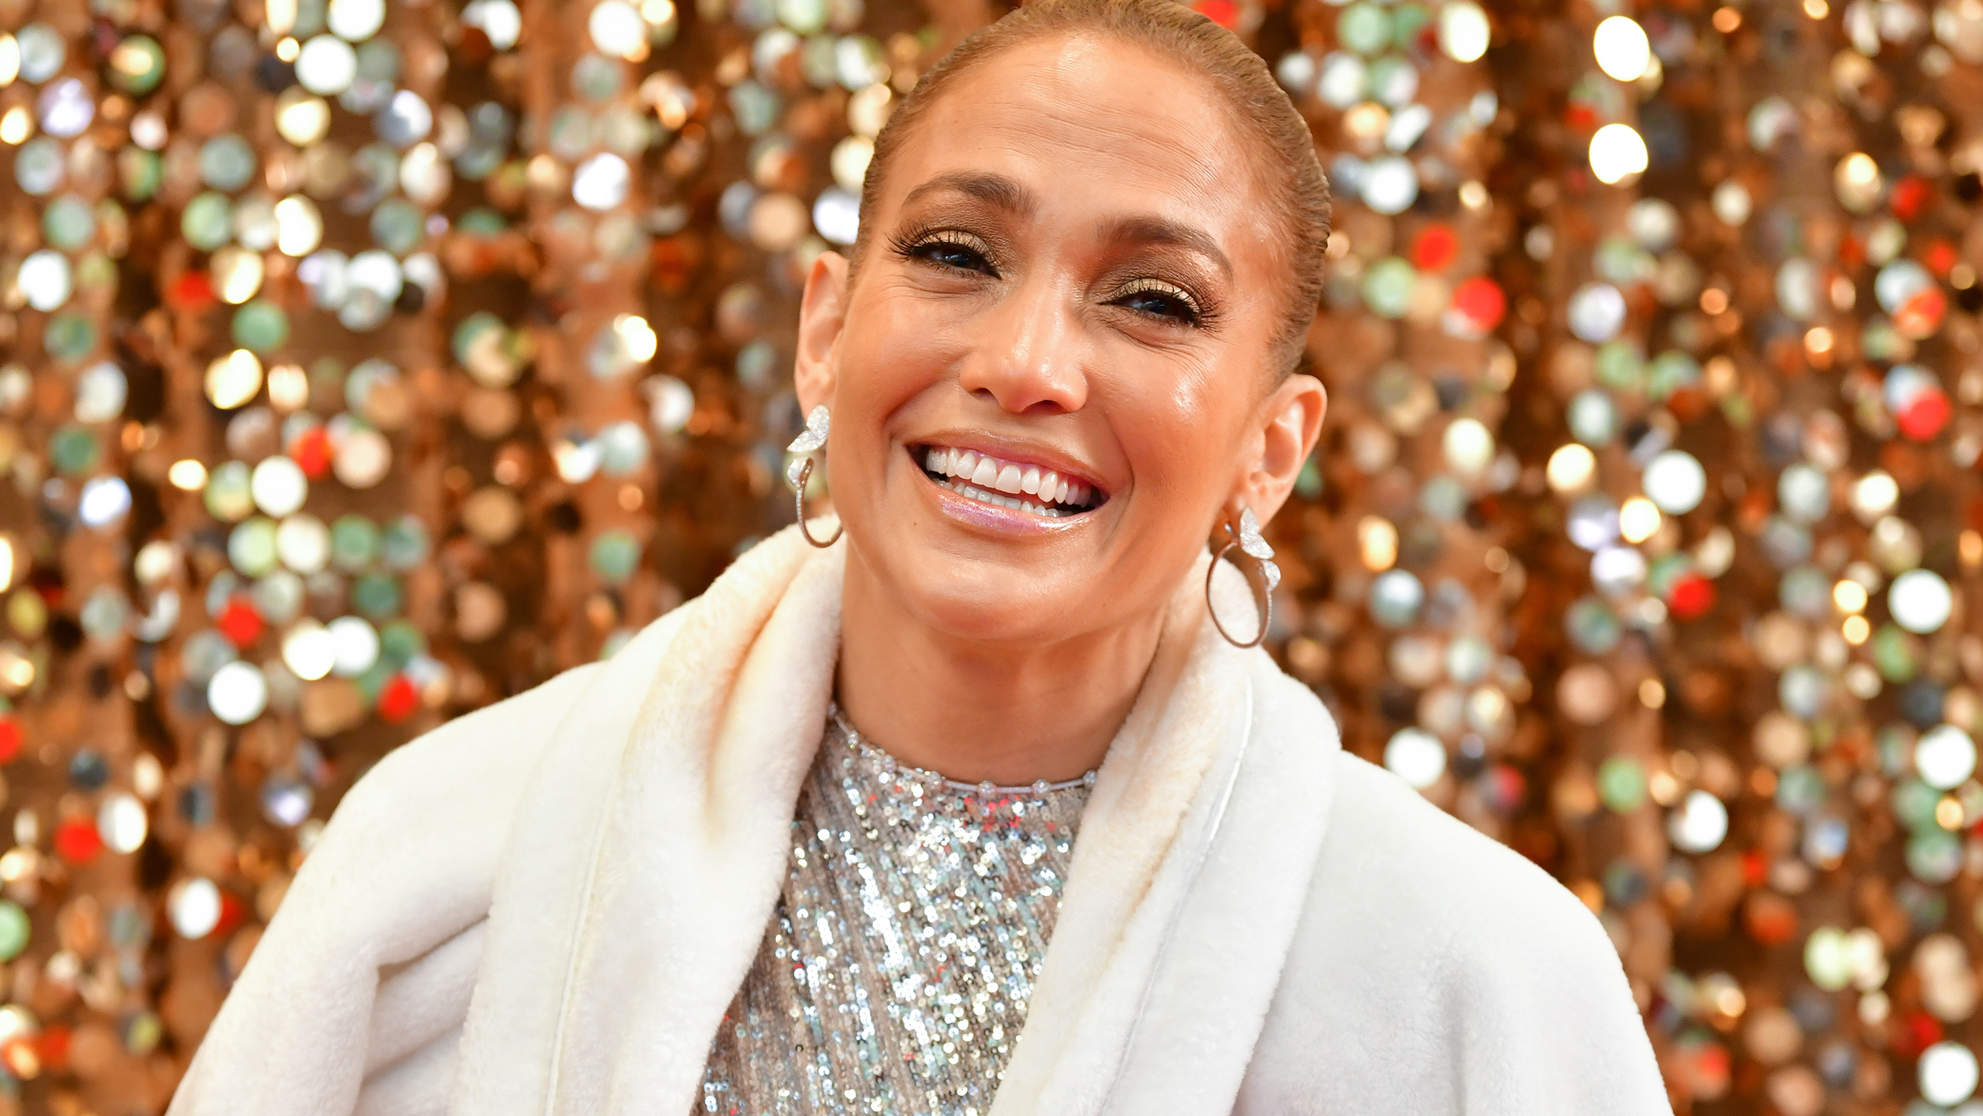 Jennifer Lopez Apparently Buys 50 Jars of This Candle Every Month